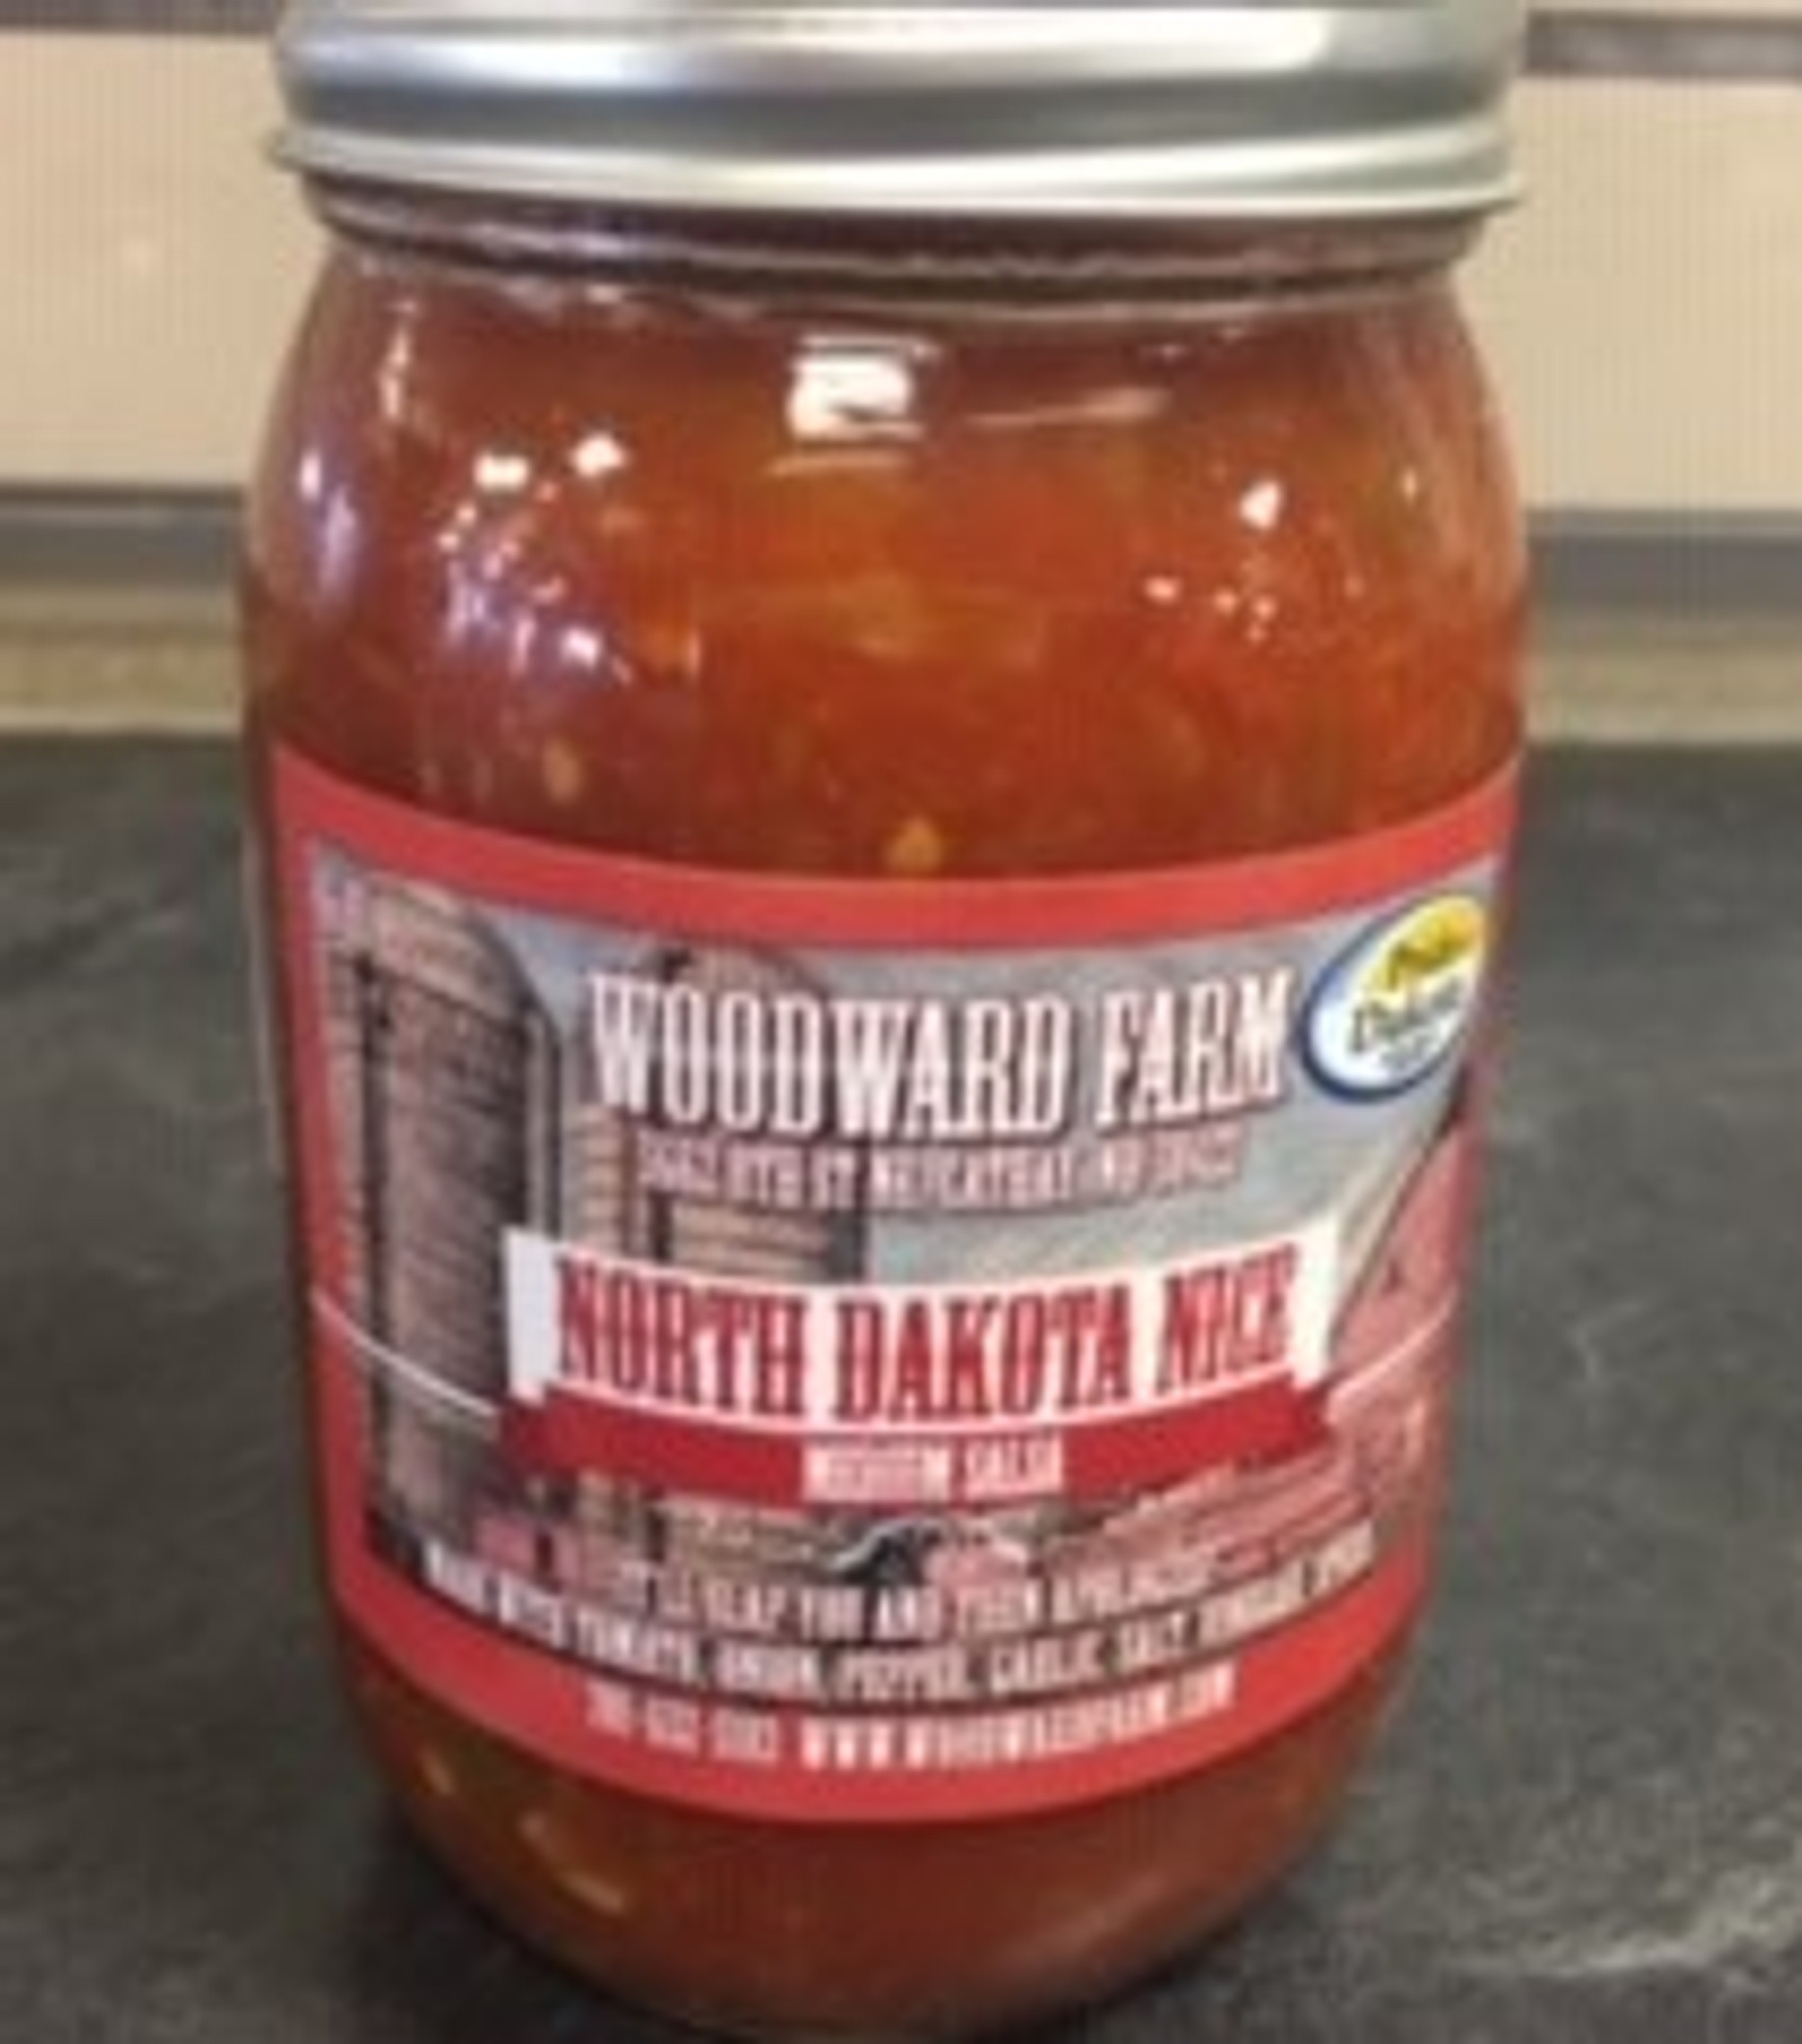 North Dakota Nice Medium Salsa